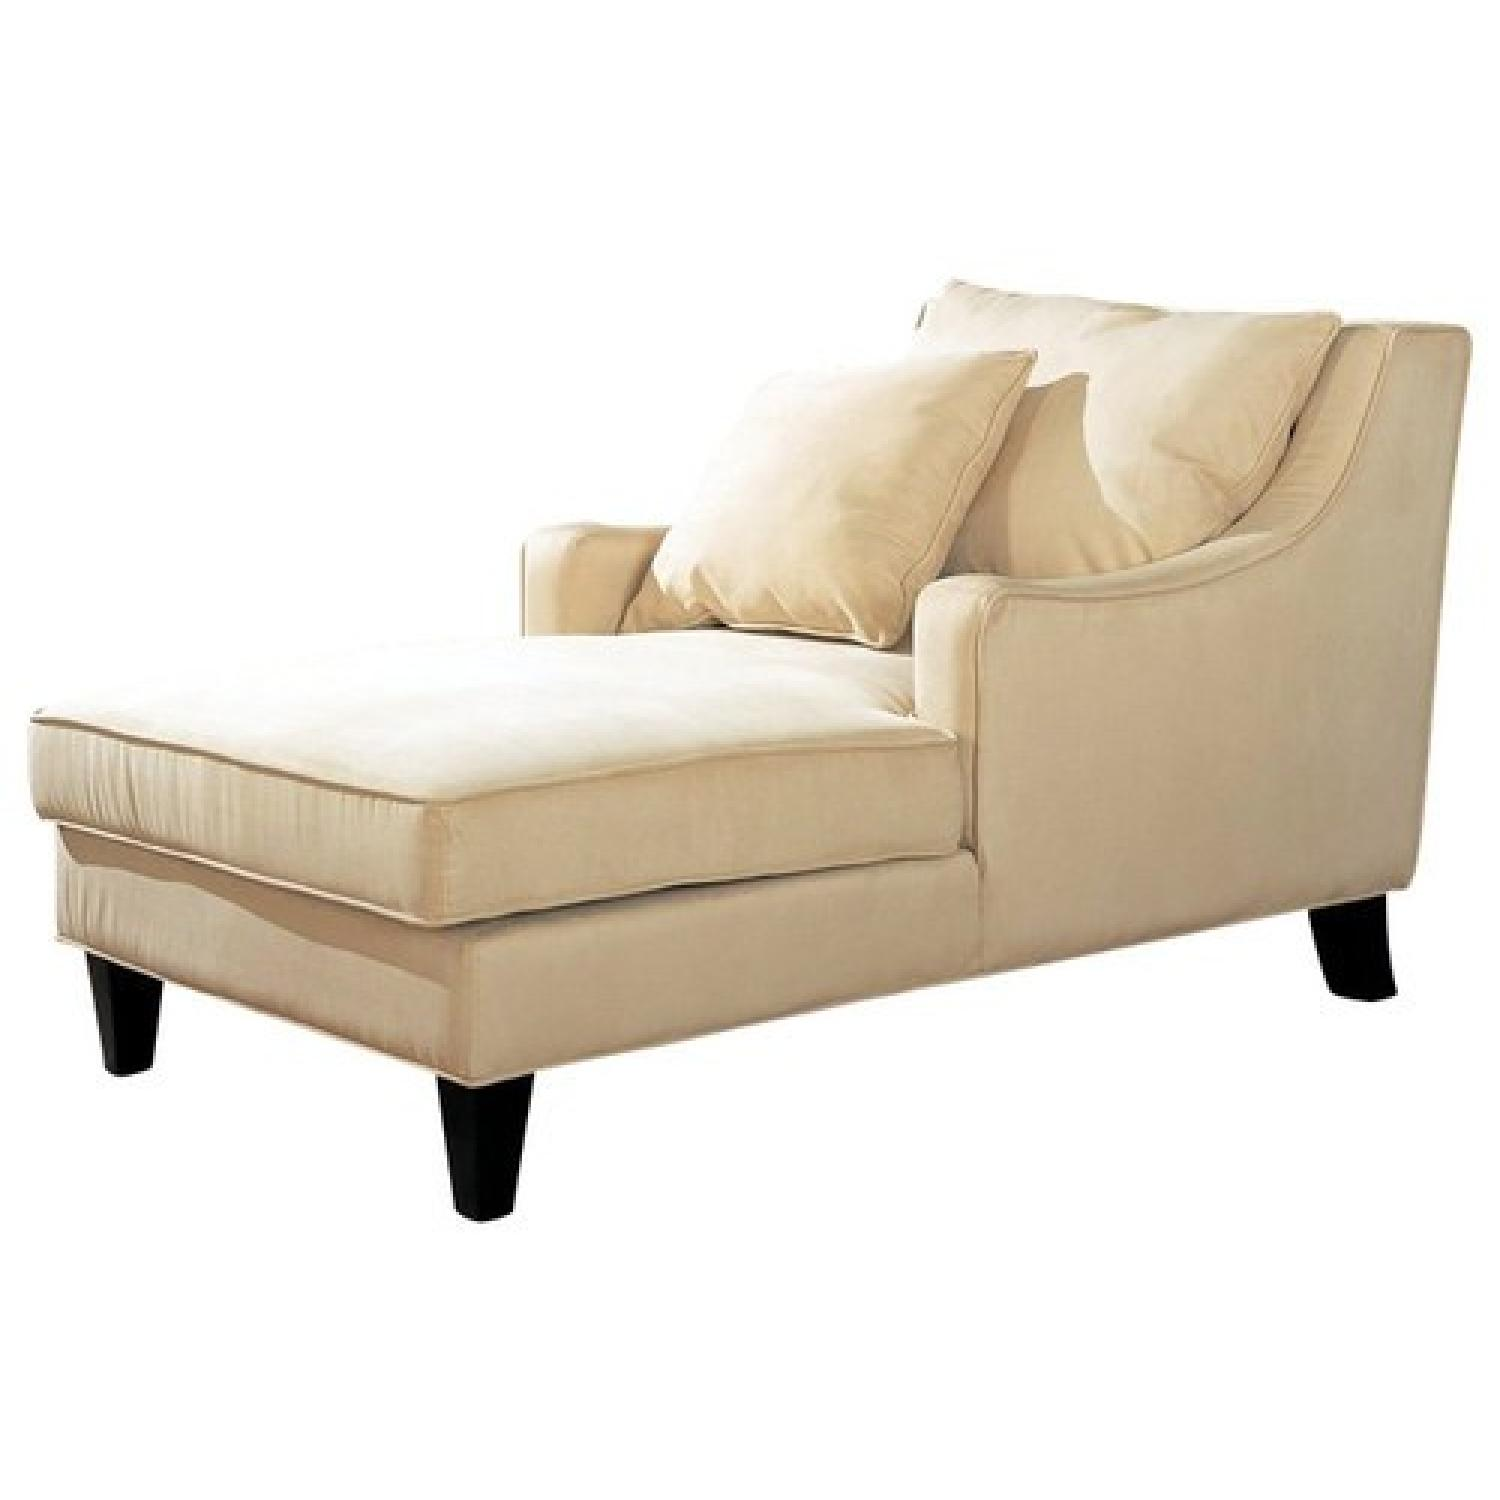 Chaiselongue Modern Modern Chaise Lounge In Beige Microfiber Fabric